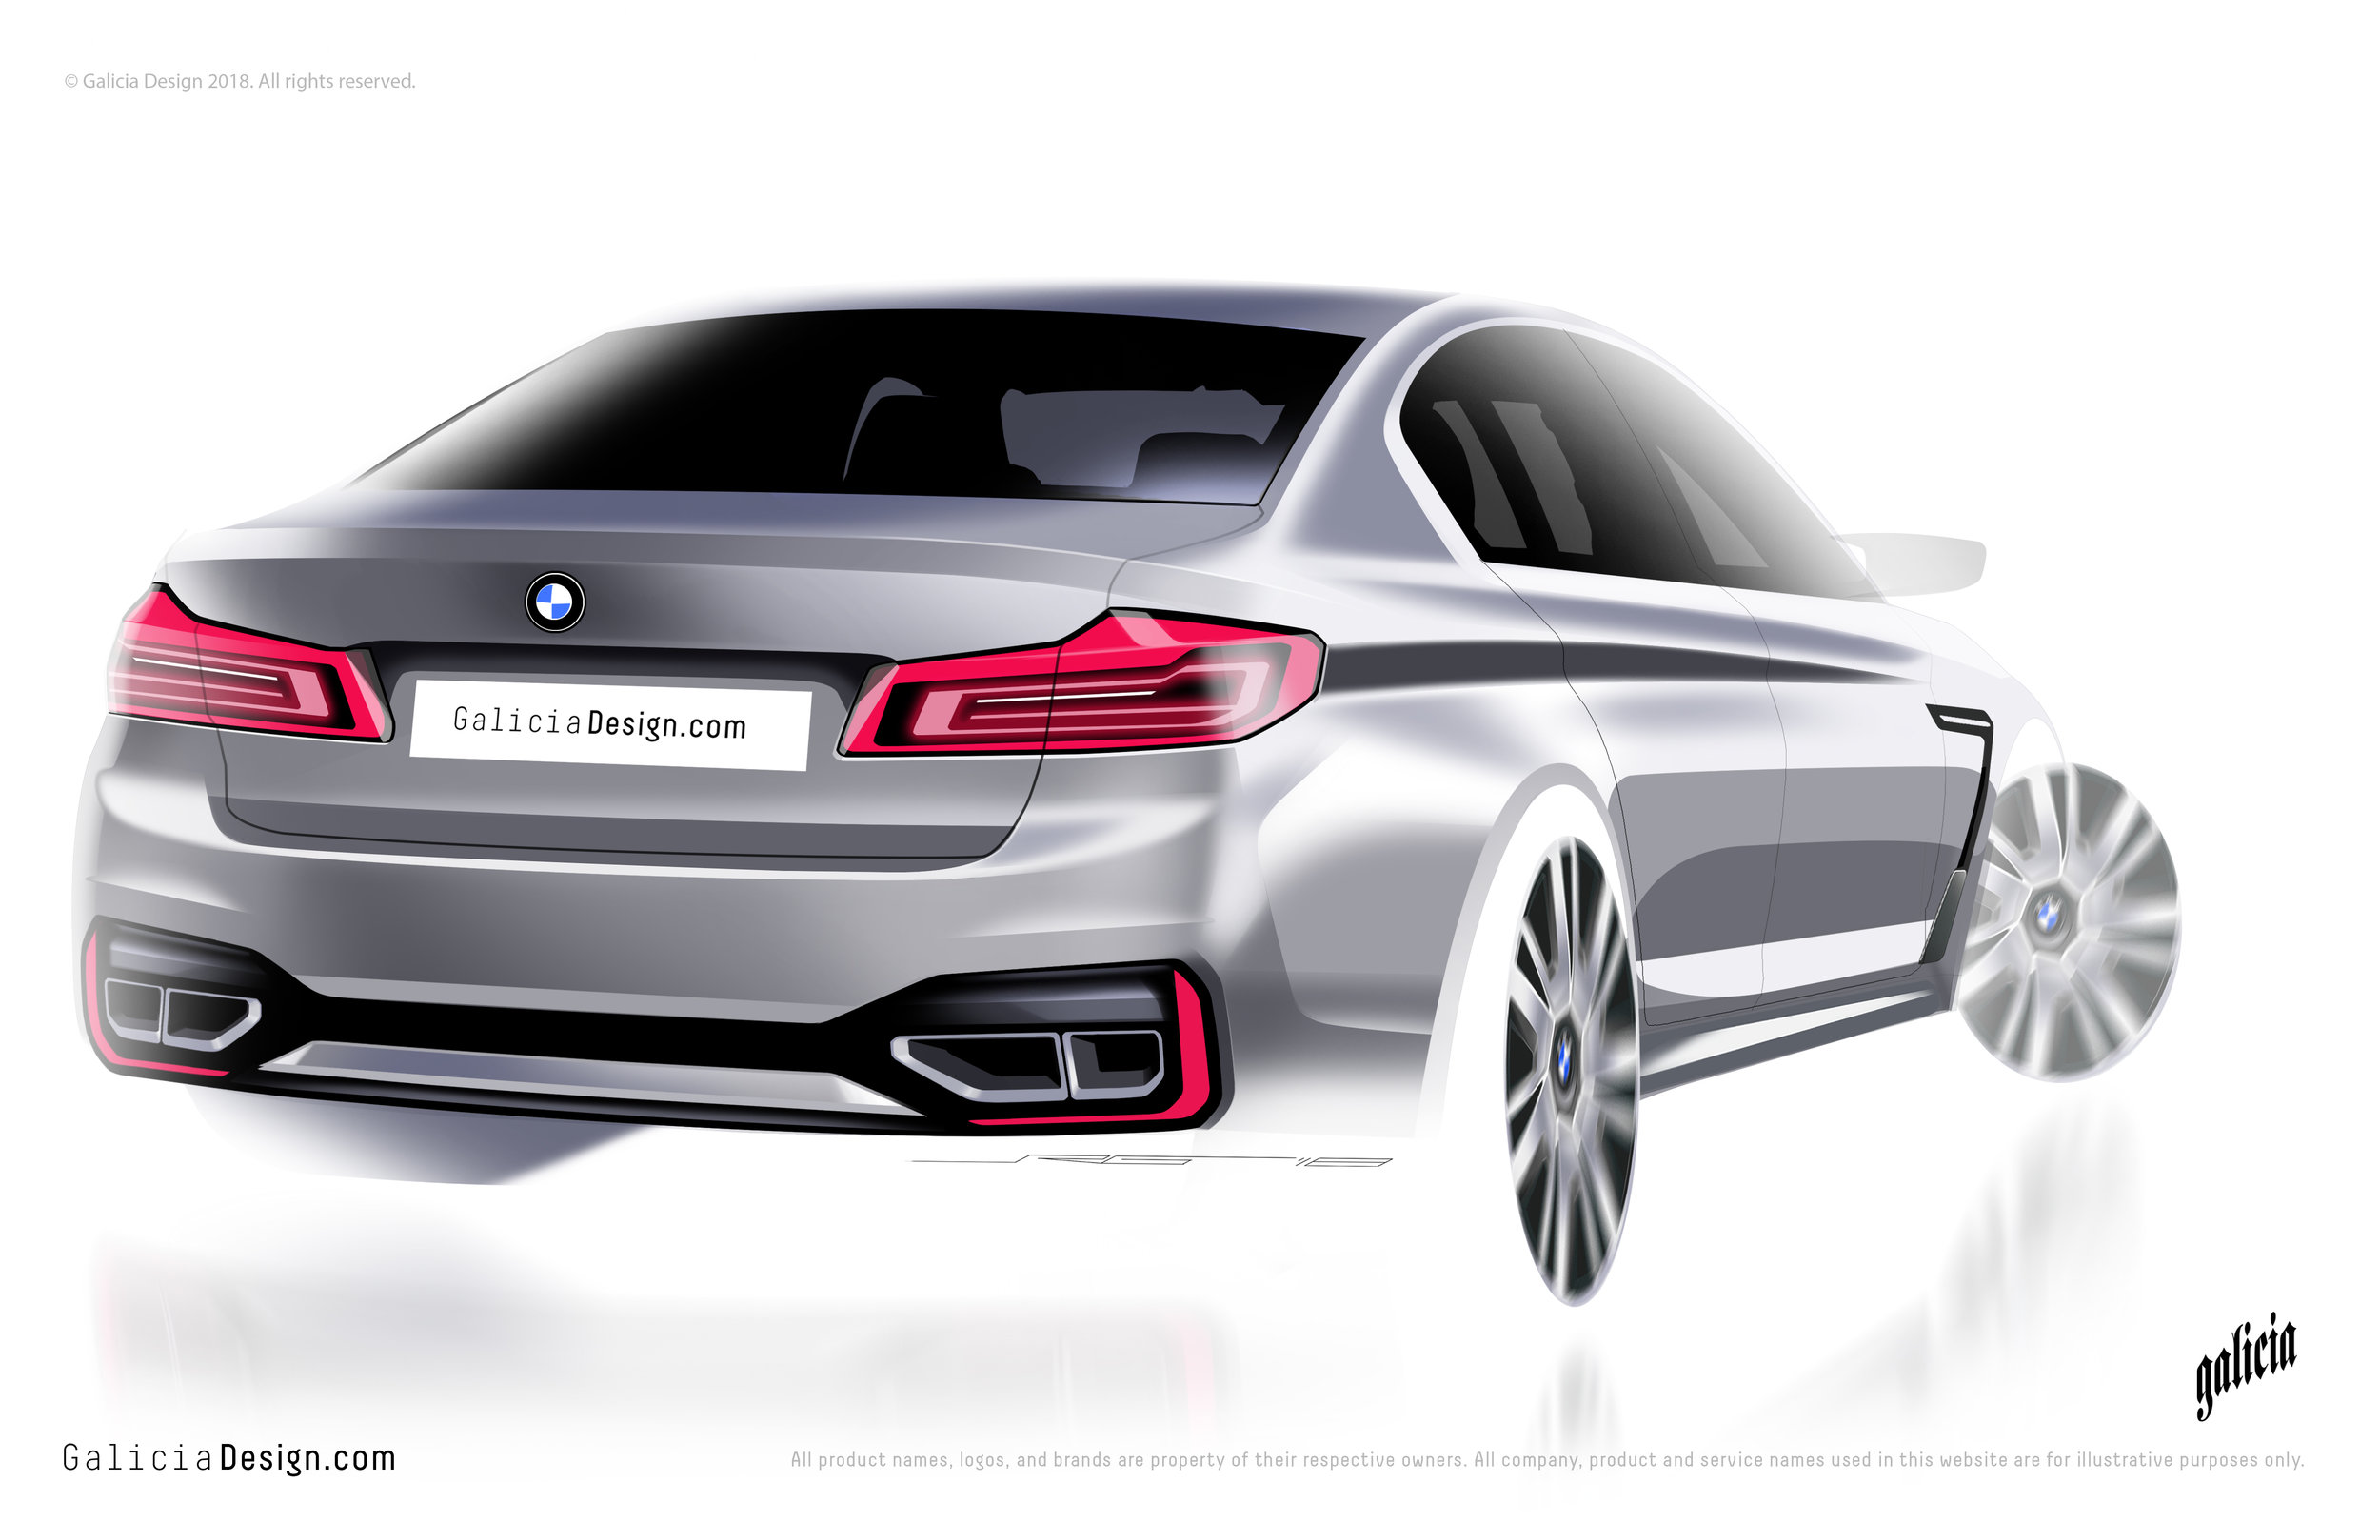 bmw 5 rear view - galiciadesign_com.jpg